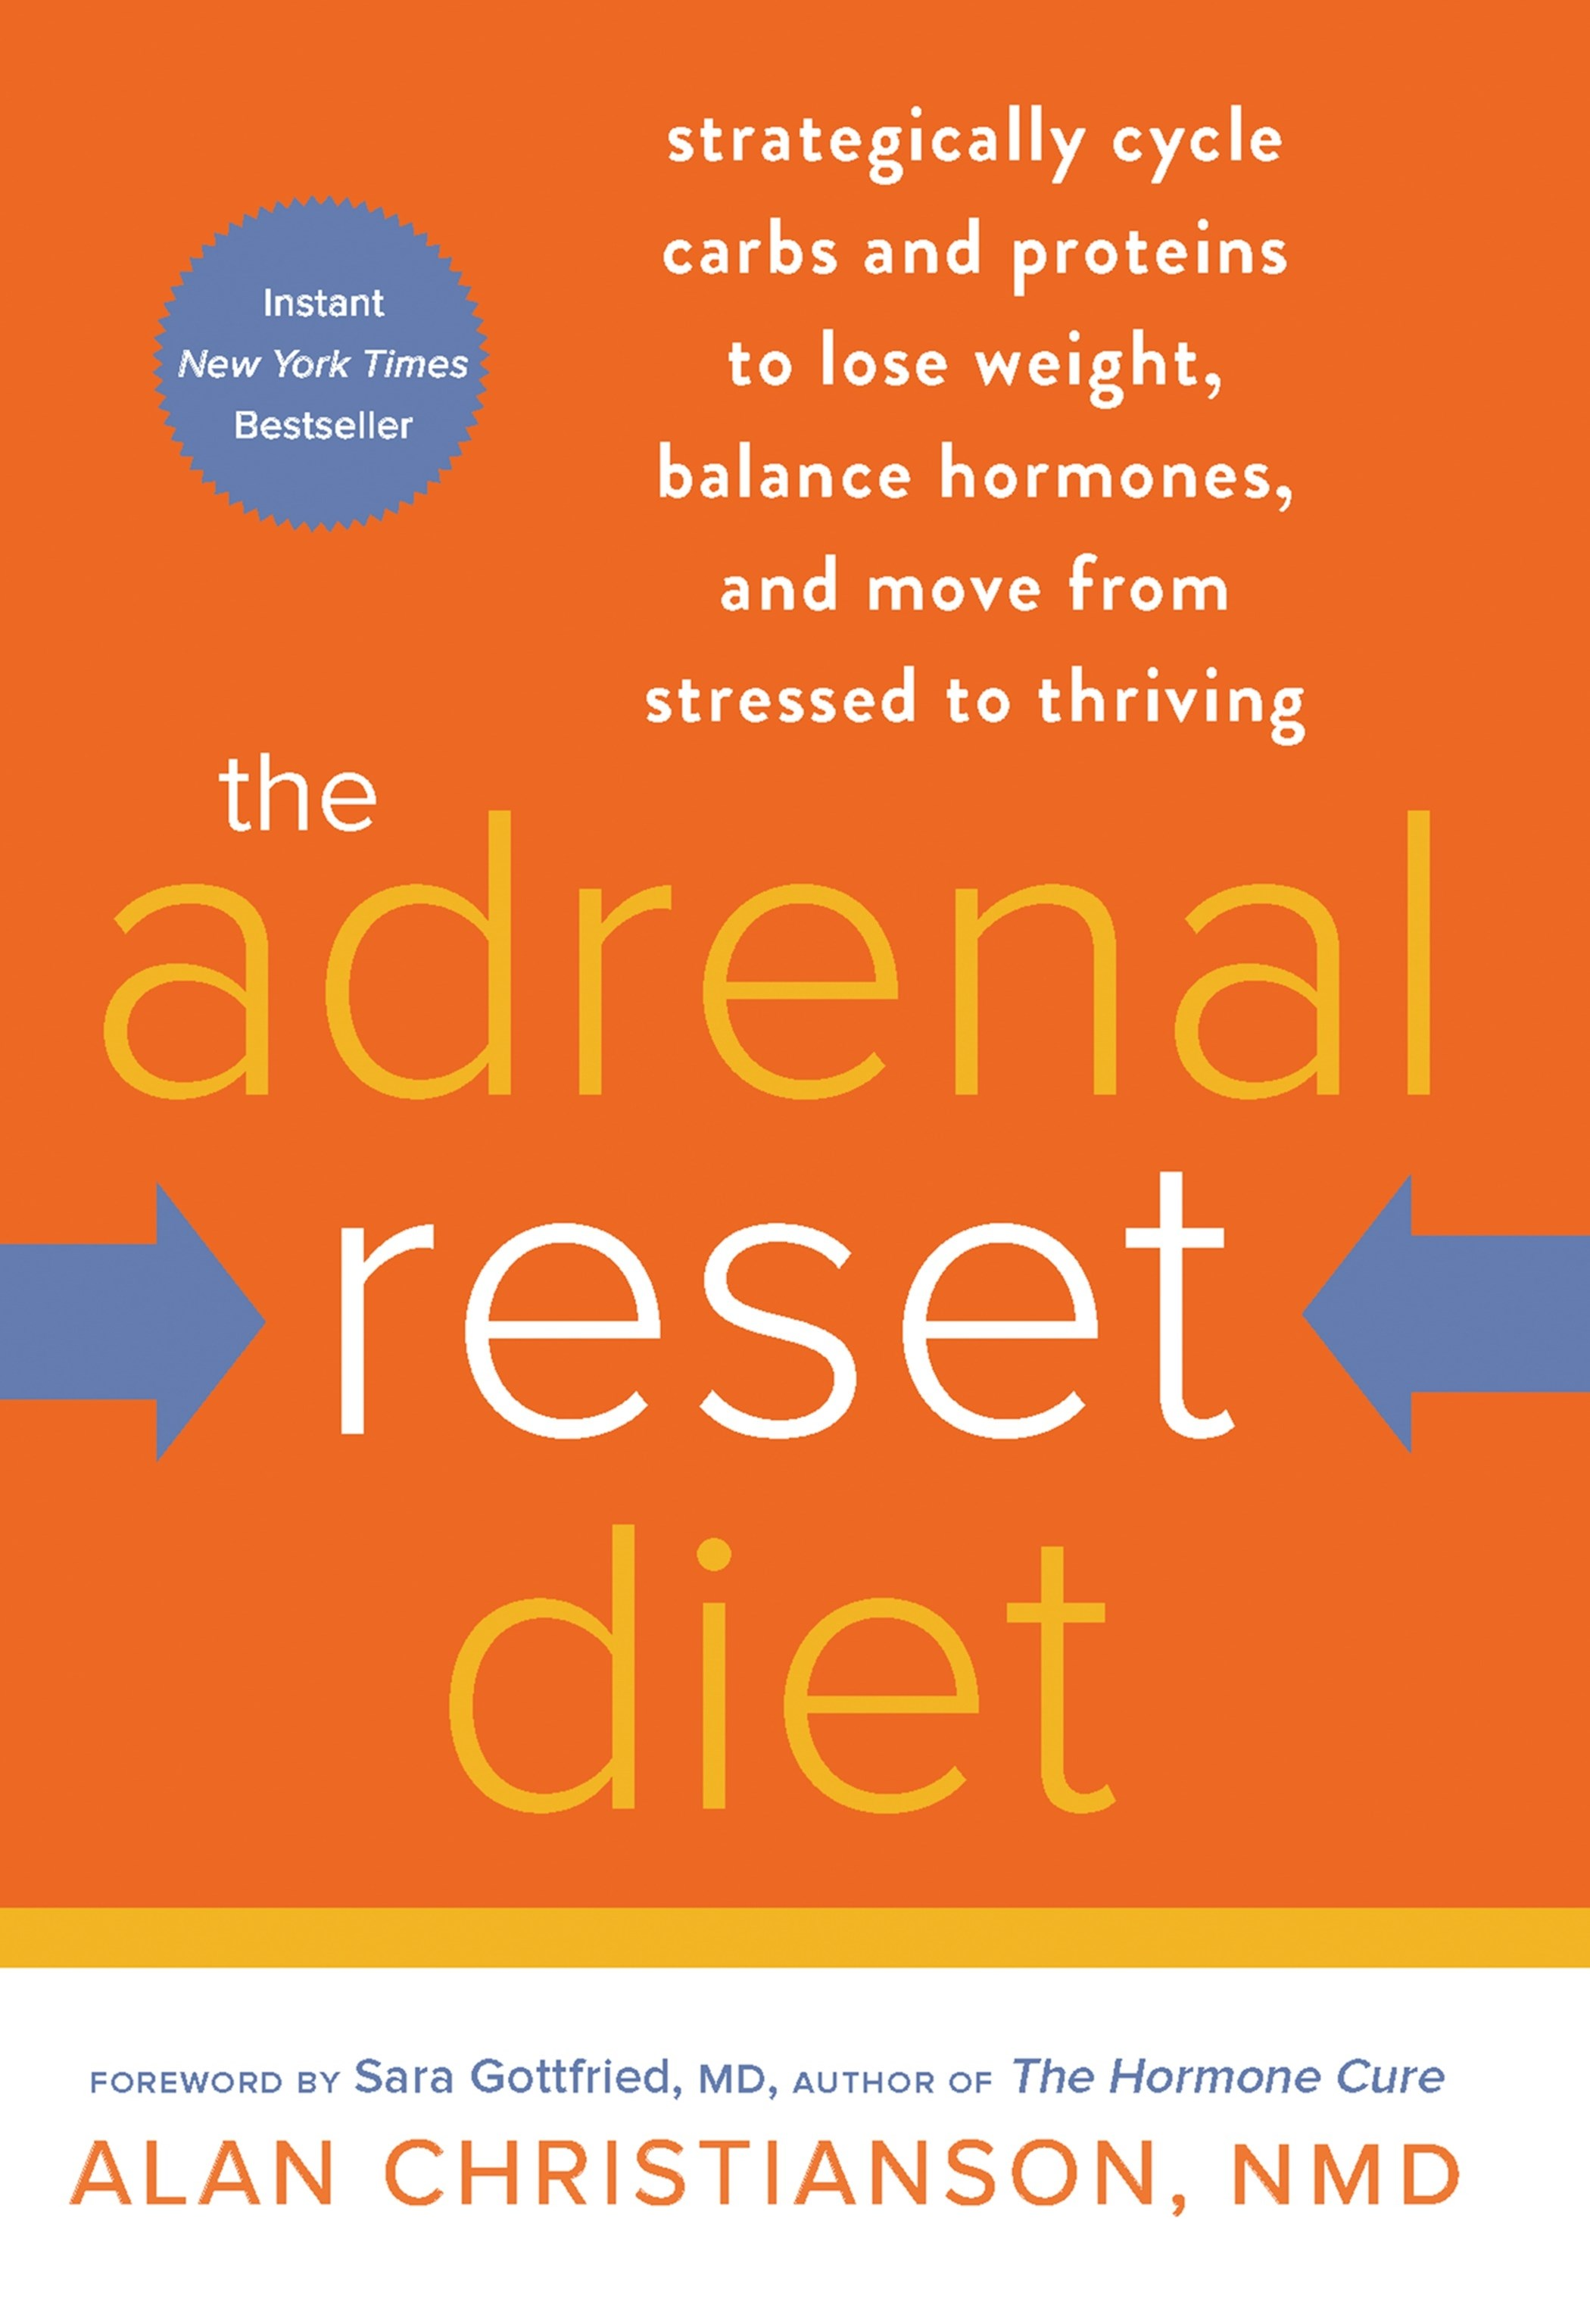 The Adrenal Reset Diet: Strategically Cycle Carbs and Proteins to Lose Weight, Balance Hormones and Move from Stressed to Thriving